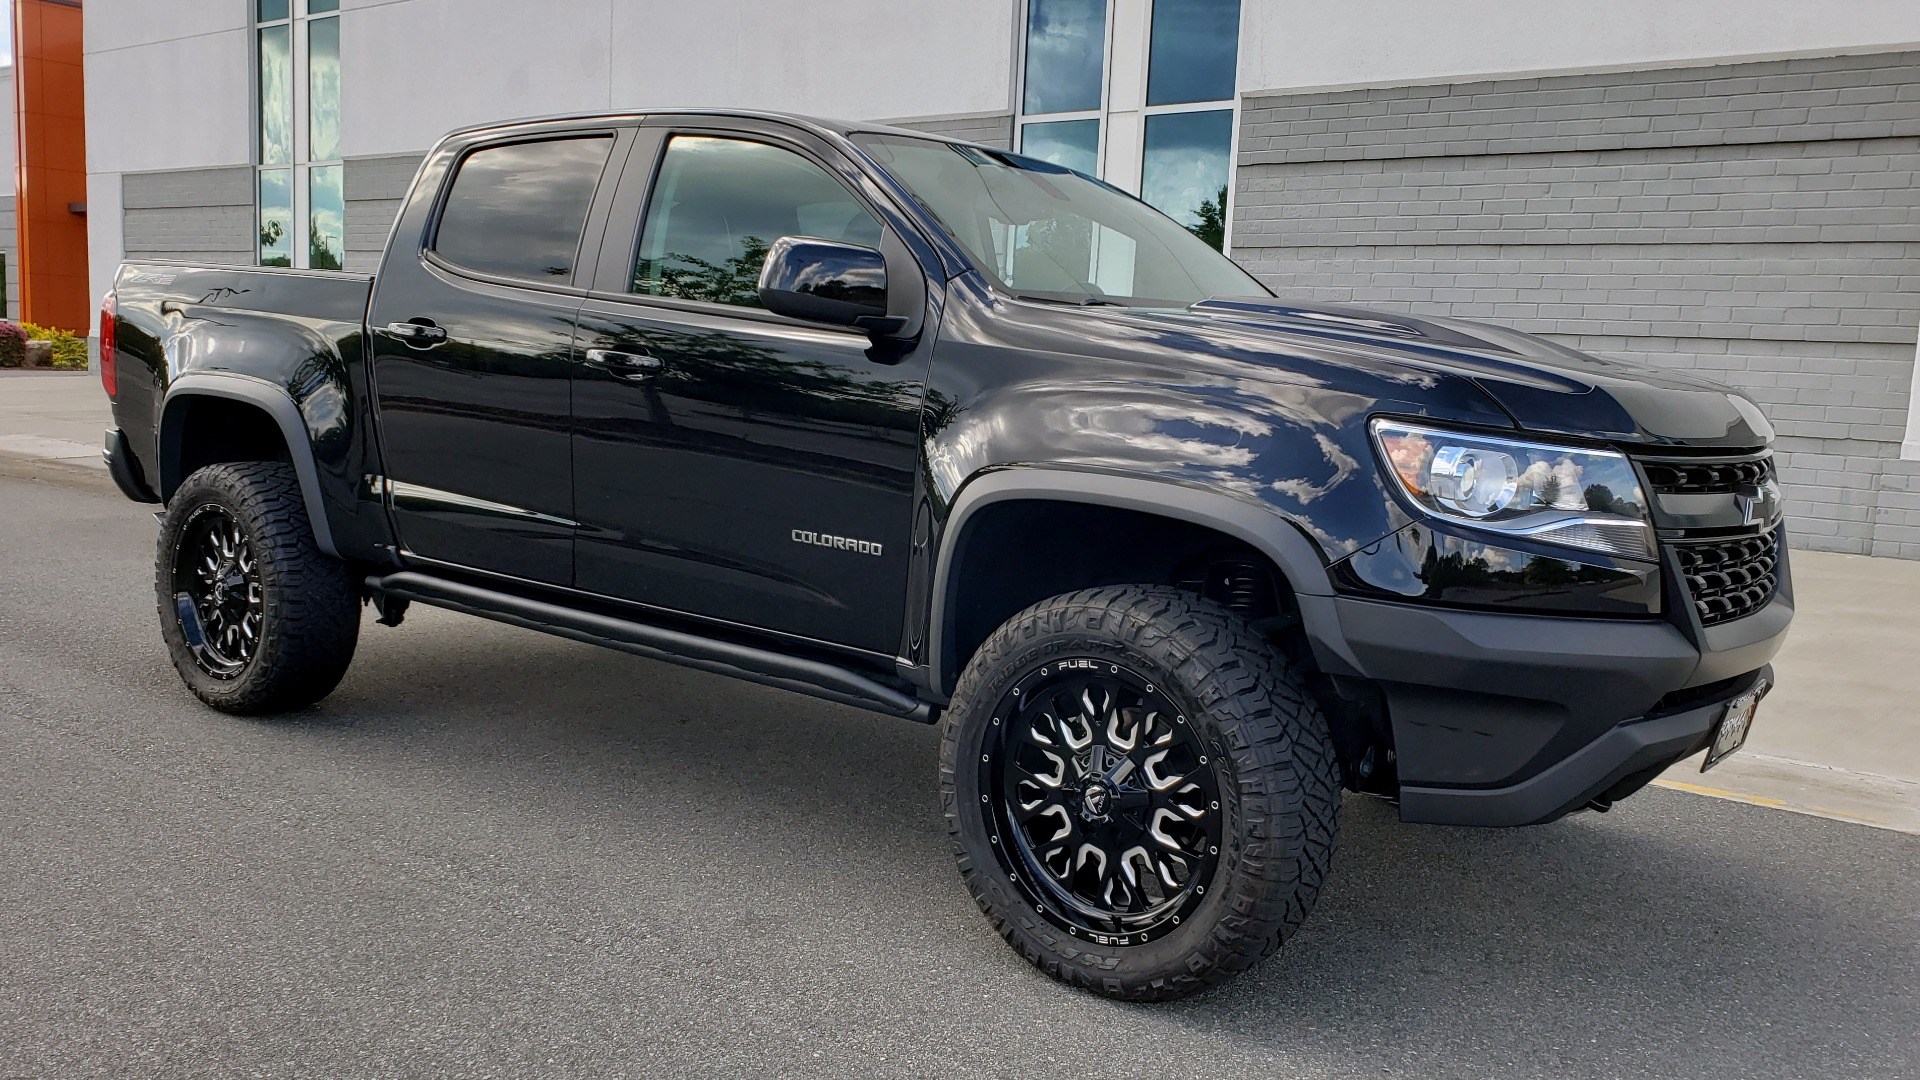 Used 2019 Chevrolet COLORADO 4WD ZR2 / 3.6L V6 / 8-SPD AUTO / CREWCAB / LEATHER / BOSE / REARVIEW for sale $41,995 at Formula Imports in Charlotte NC 28227 6